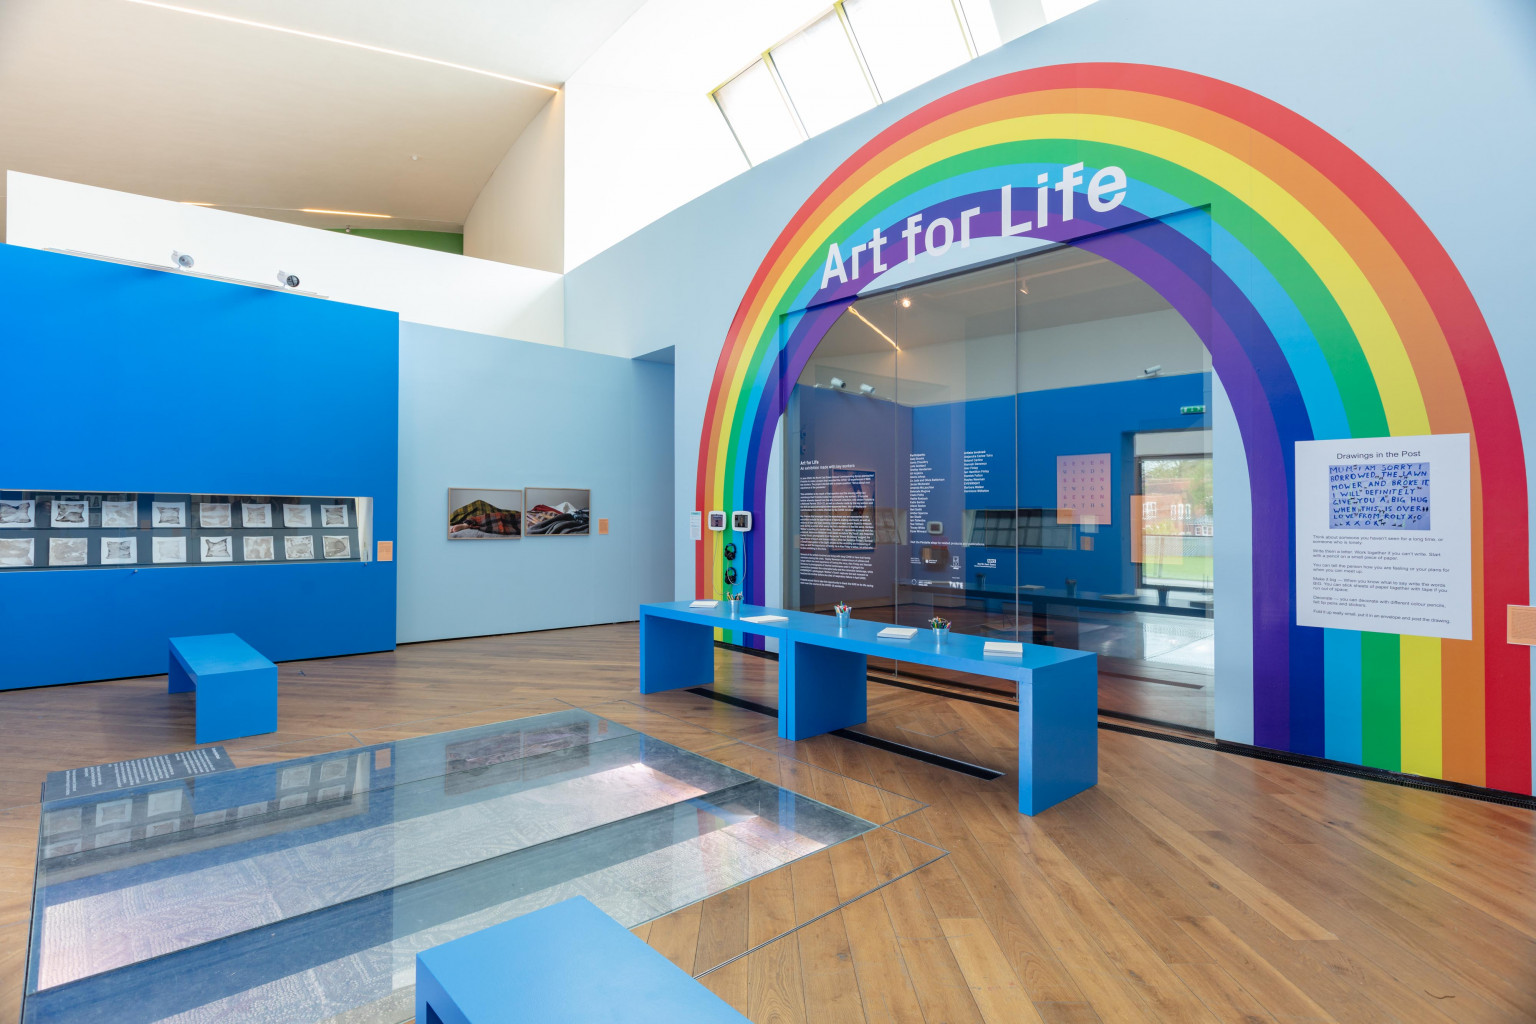 Installation view, Art for Life, Firstsite, 2021  Photograph by Anna Lukala 03